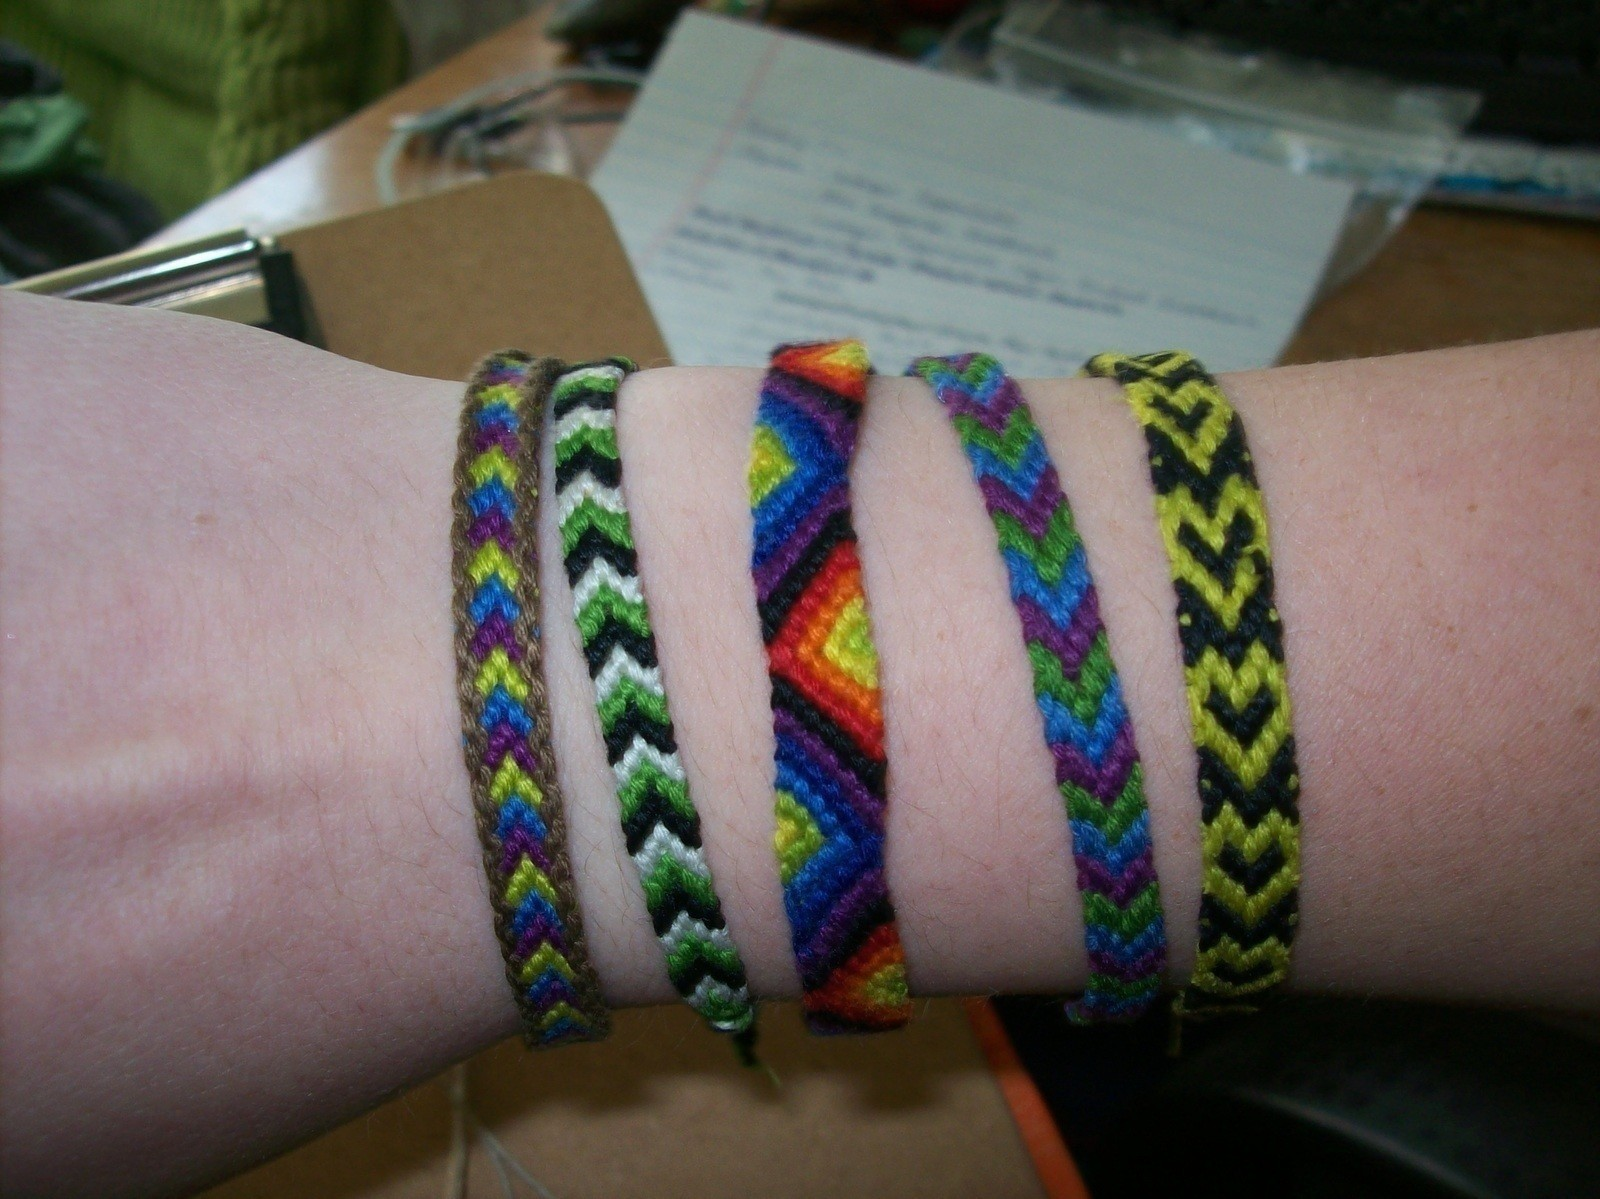 Embroidery Floss Friendship Bracelets A Friendship Bracelet Braiding And Jewelry Making On